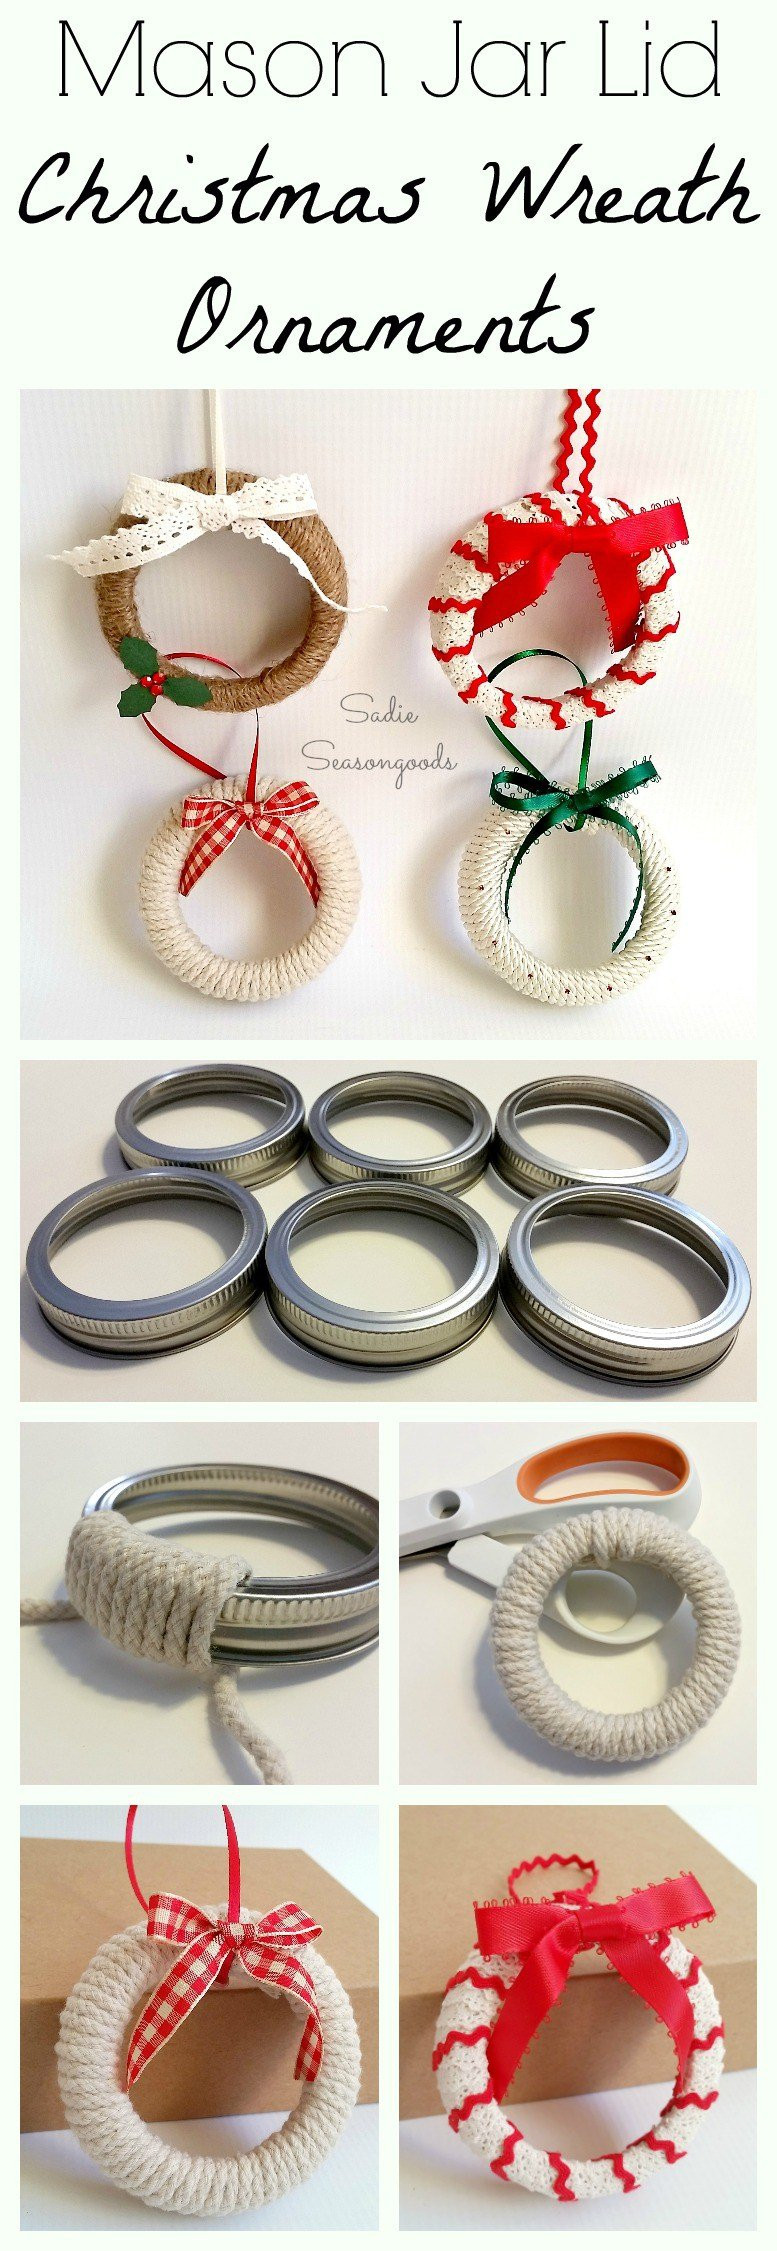 Best ideas about Pinterest Christmas DIY . Save or Pin 11 Easy Last Minute DIY Christmas Crafts Homelovr Now.